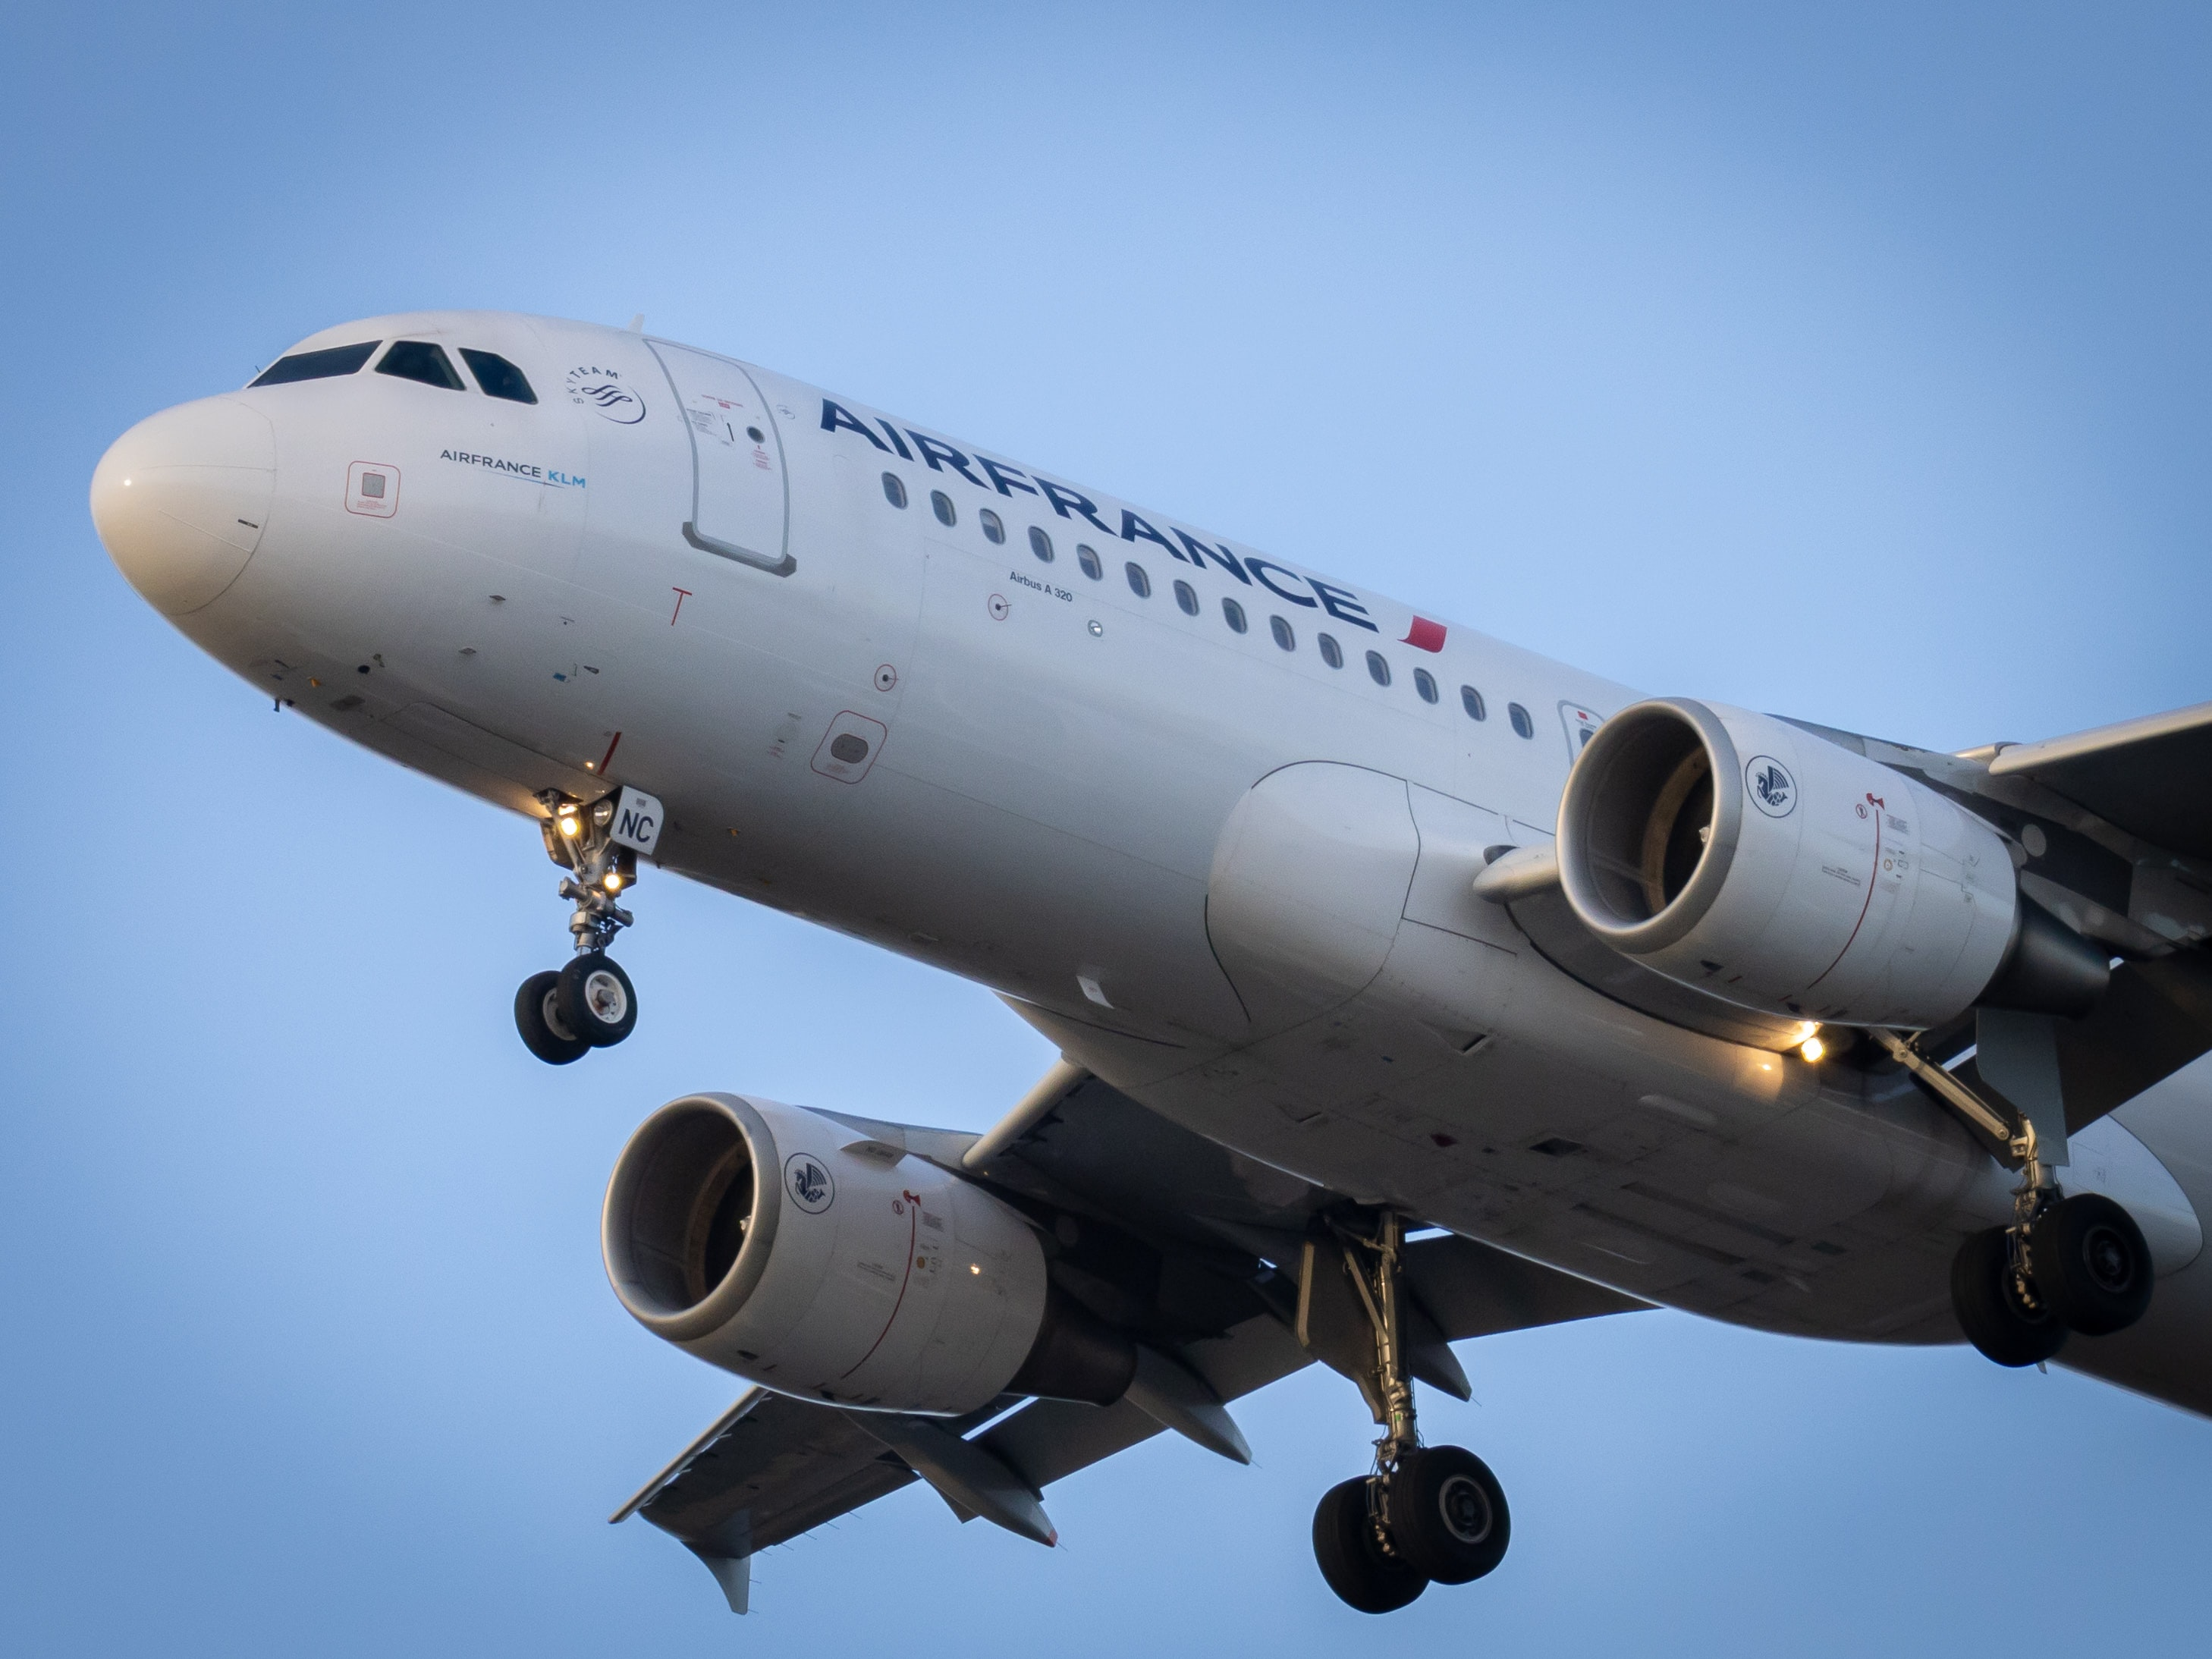 Air France chooses SkyBreathe® eco-flying solution to reduce fuel burn and CO2 emissions